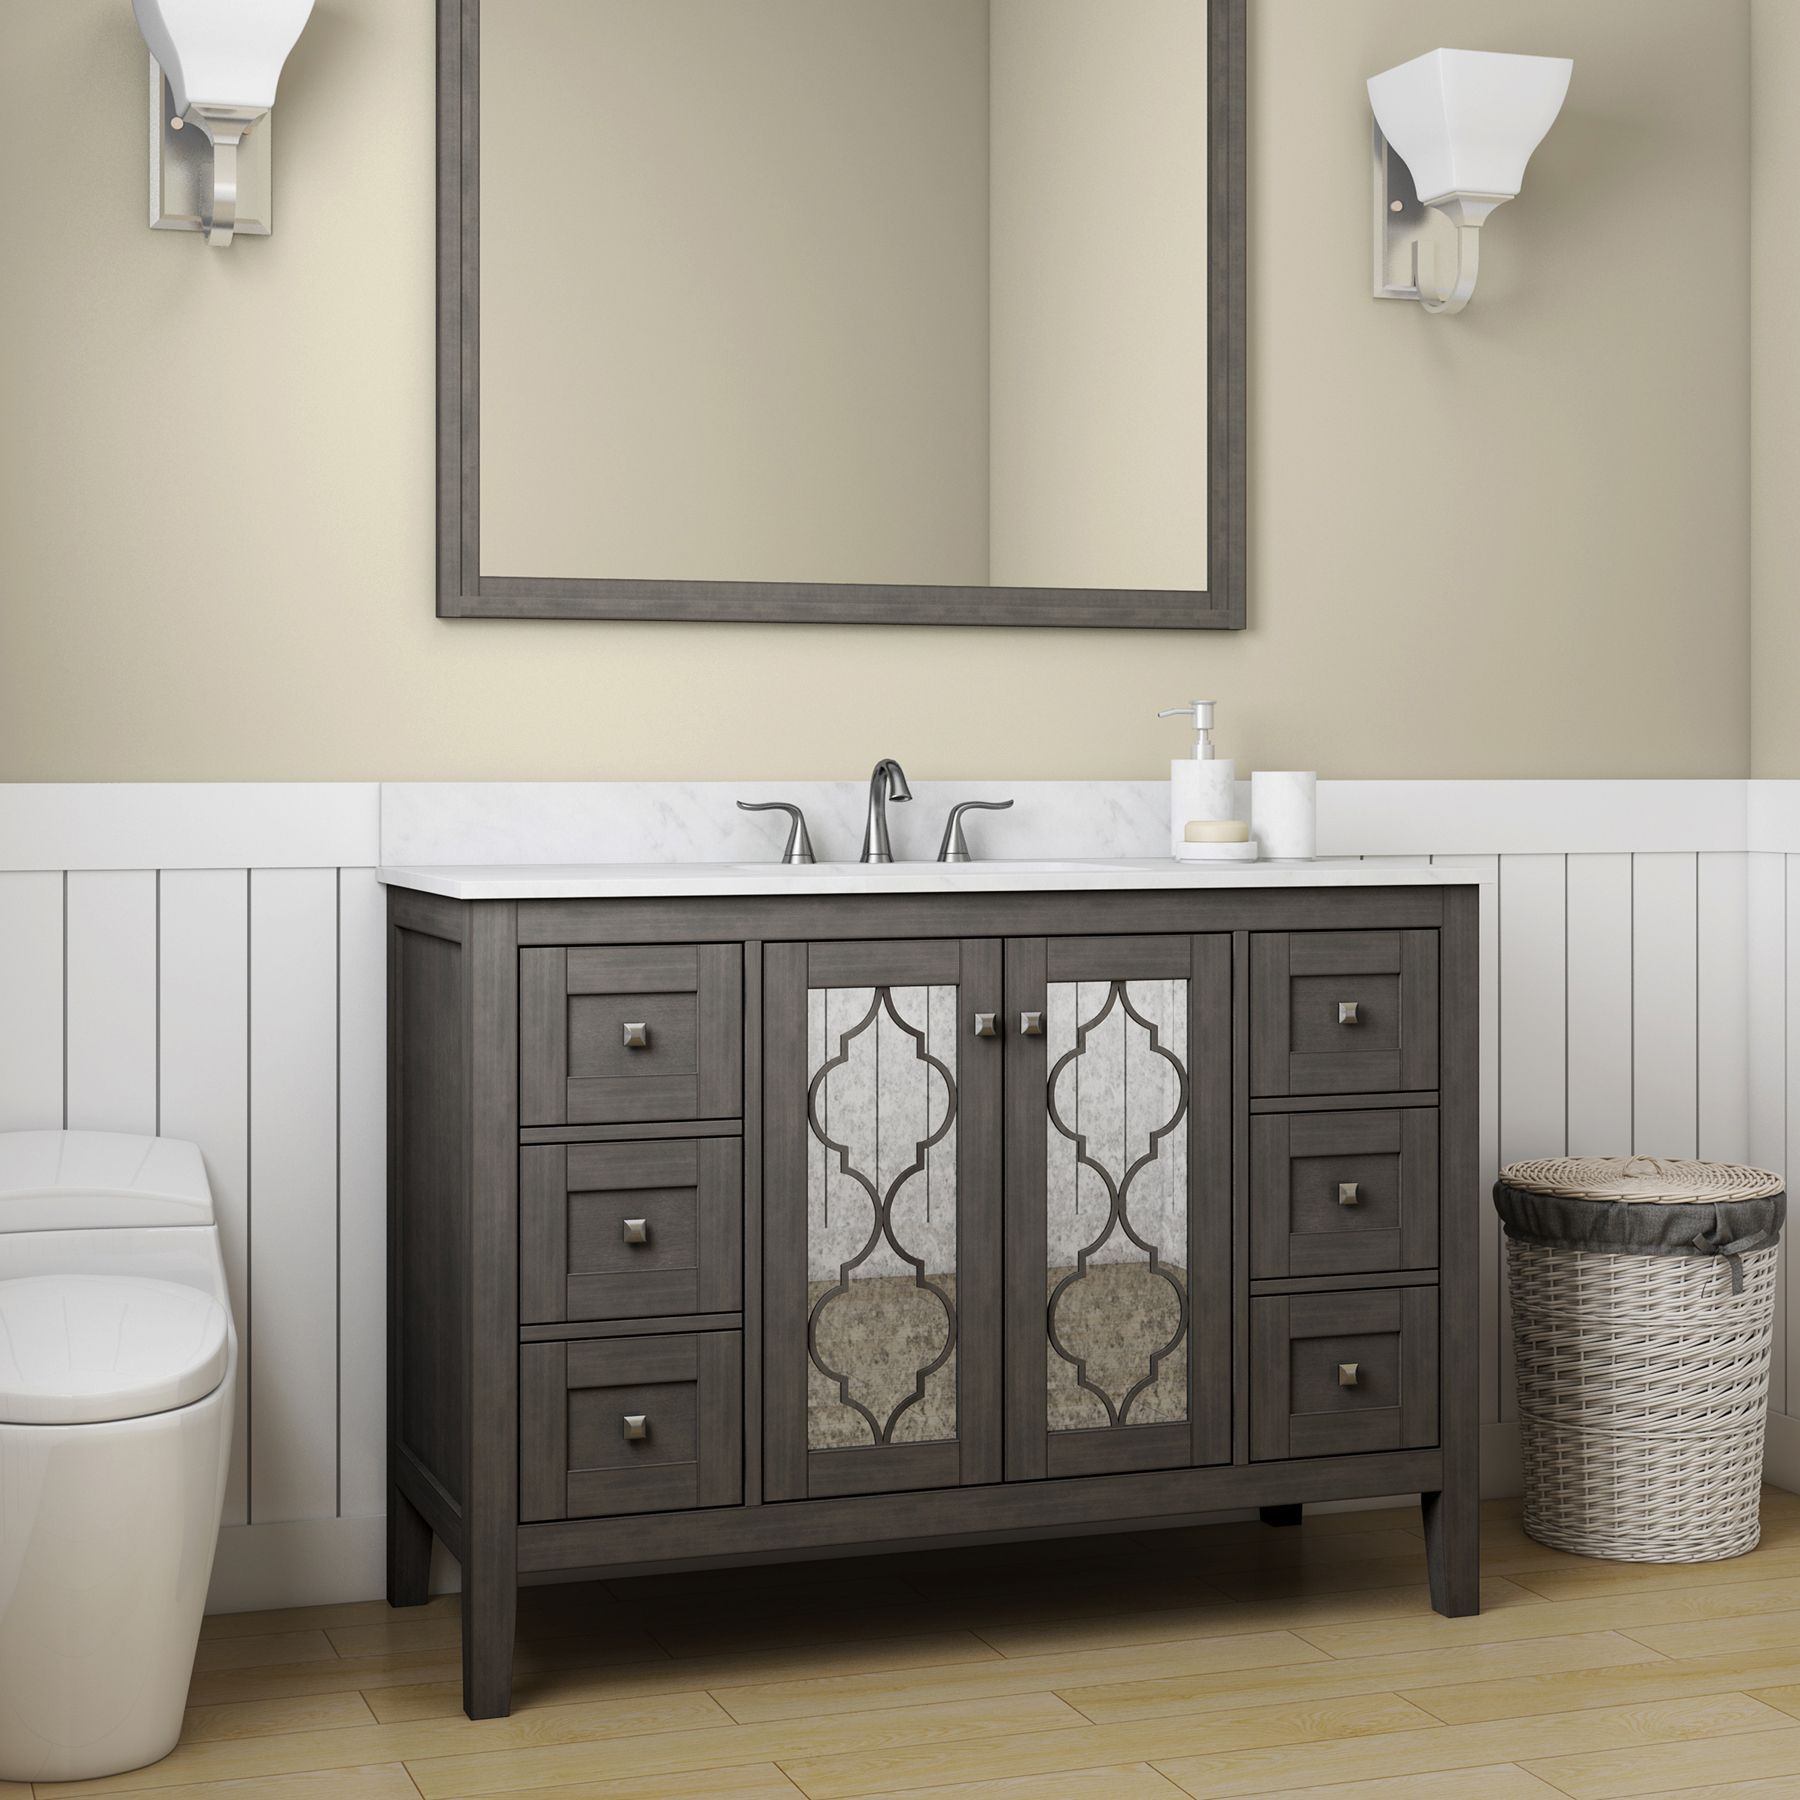 Allen Roth Everdene 48 In Grey Single Sink Bathroom Vanity With Carrera White Engineered Stone Top Lowes Com Bathroom Sink Vanity Bathroom Vanity Single Sink Bathroom Vanity